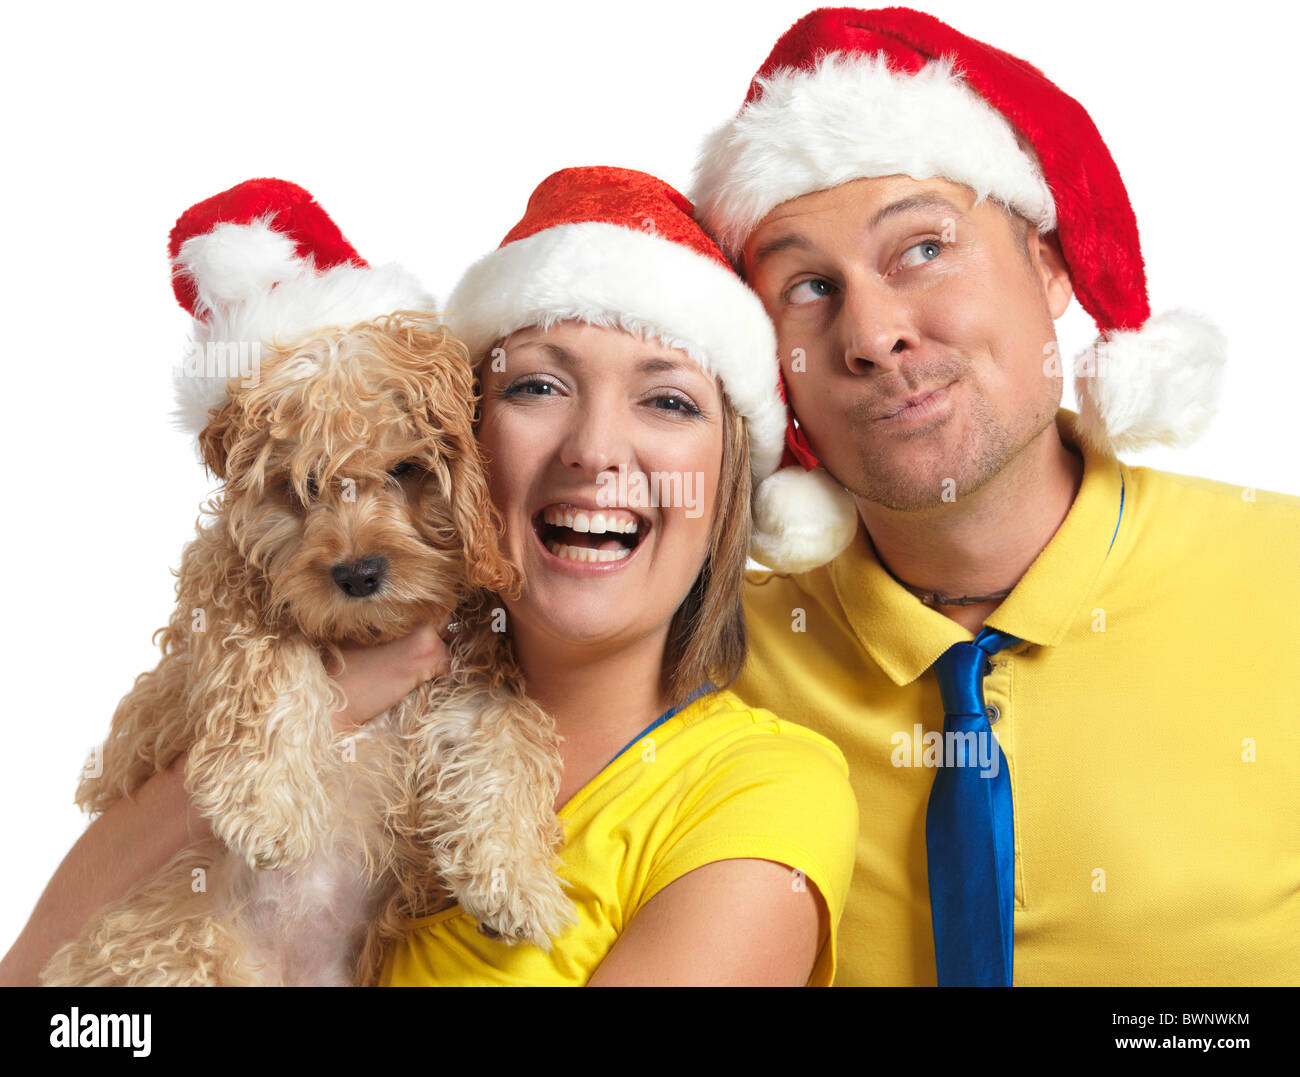 Portrait of a happy young man and a woman with a Cockapoo dog in her hands wearing red Christmas hats. - Stock Image